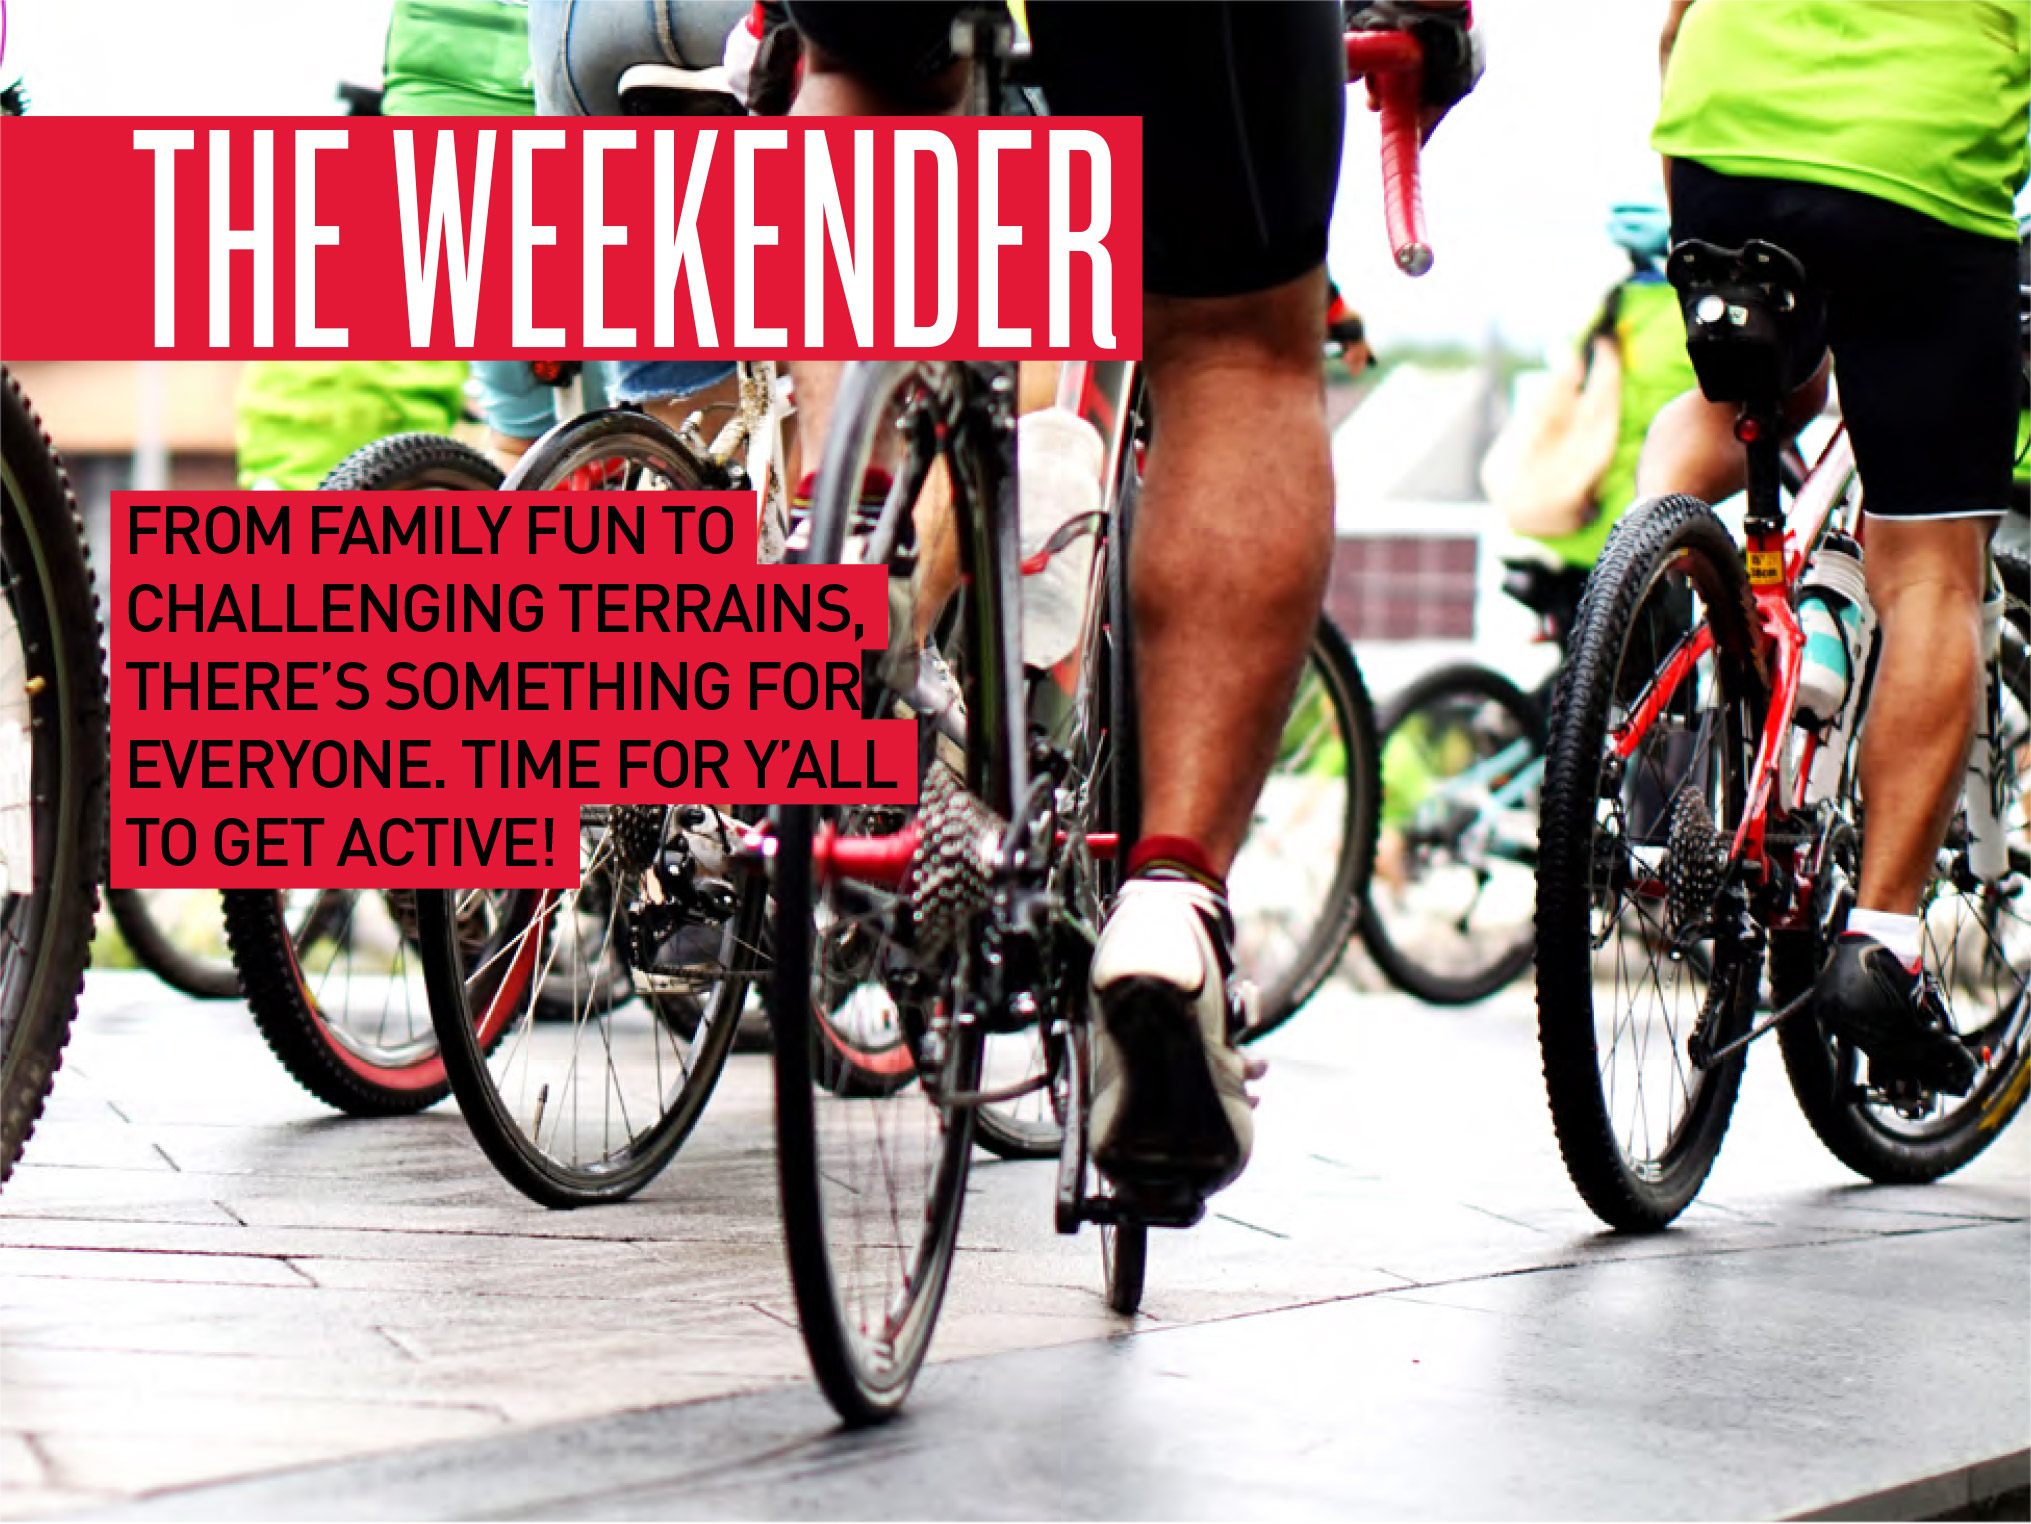 bestfit issue 12 weekender header image